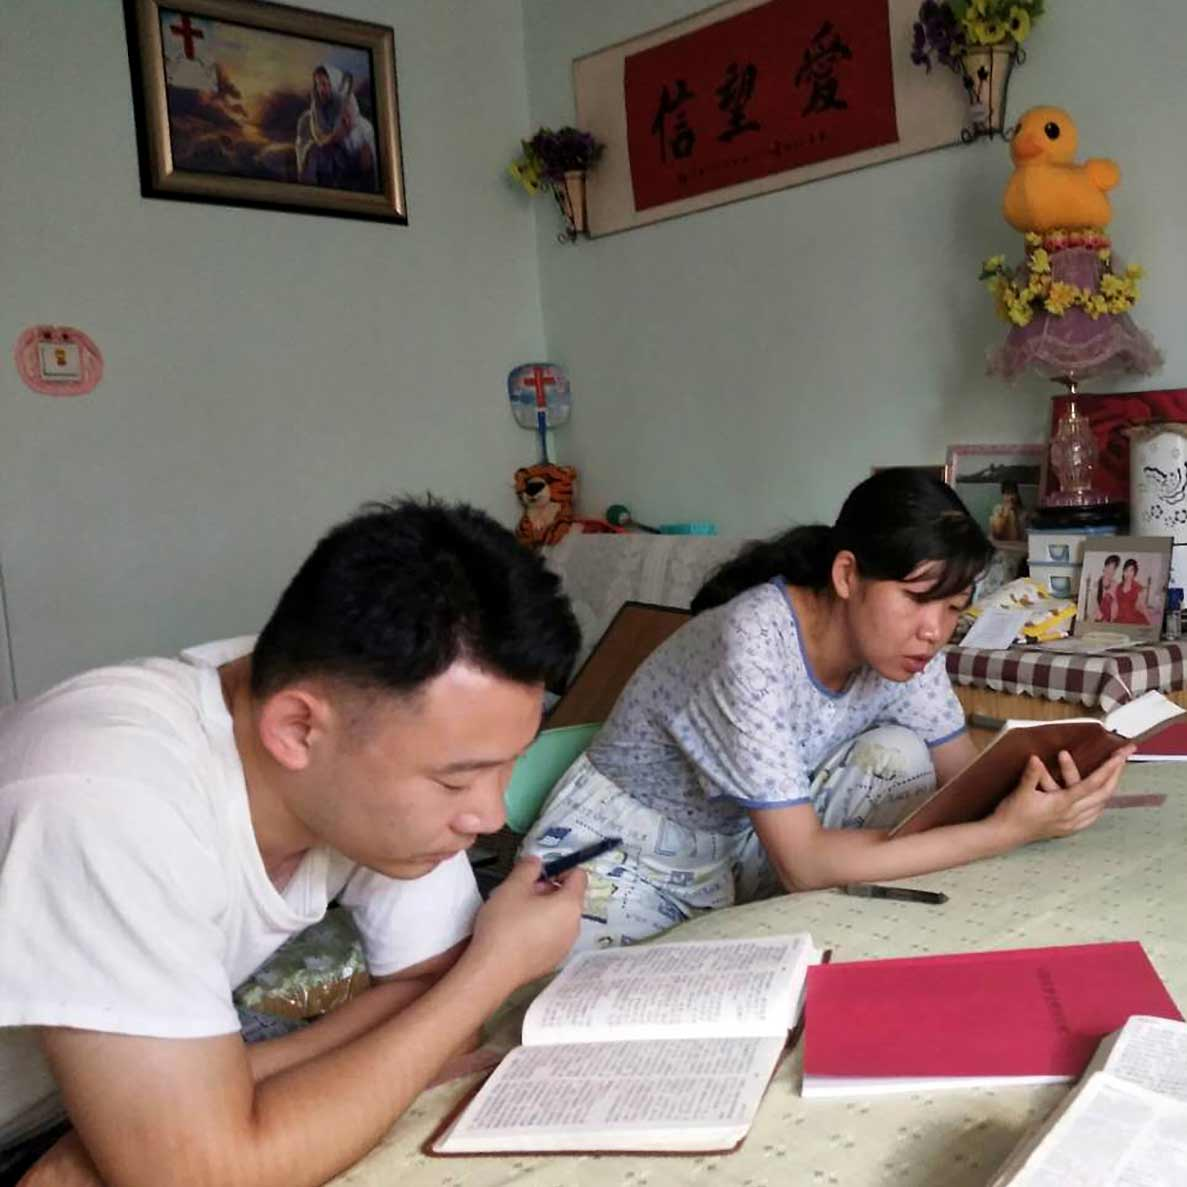 CHINA   JUN. 26, 2020 — Pastor Arrested During Online Meeting